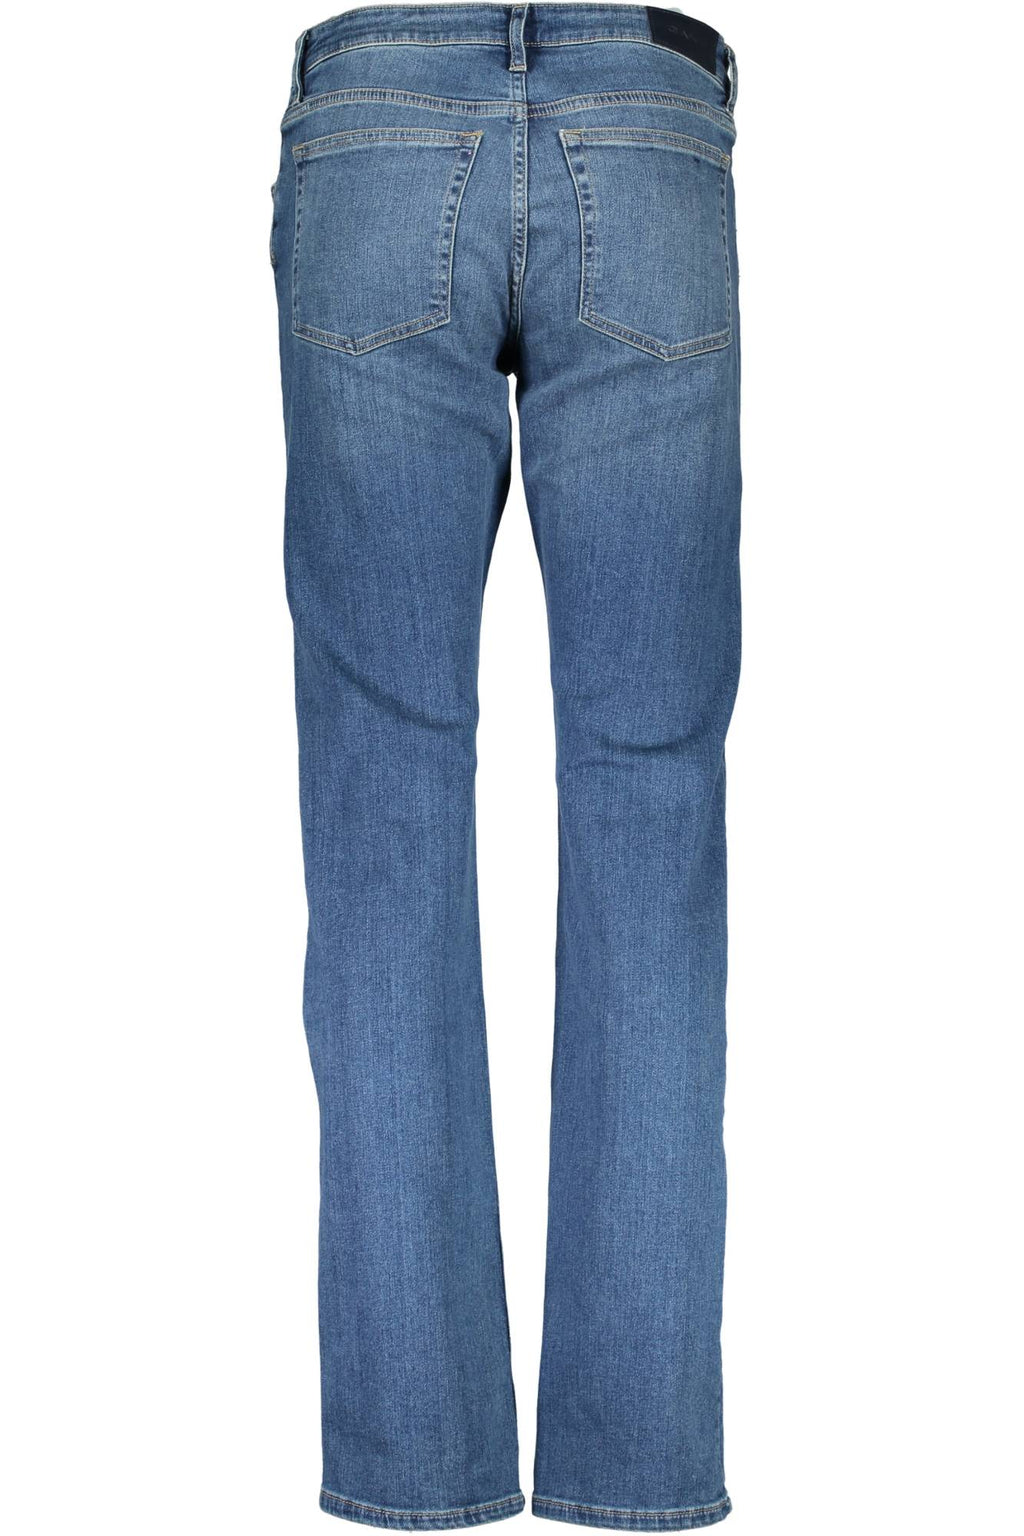 GANT Denim Jeans Damen - Blau - SF1801.4100036